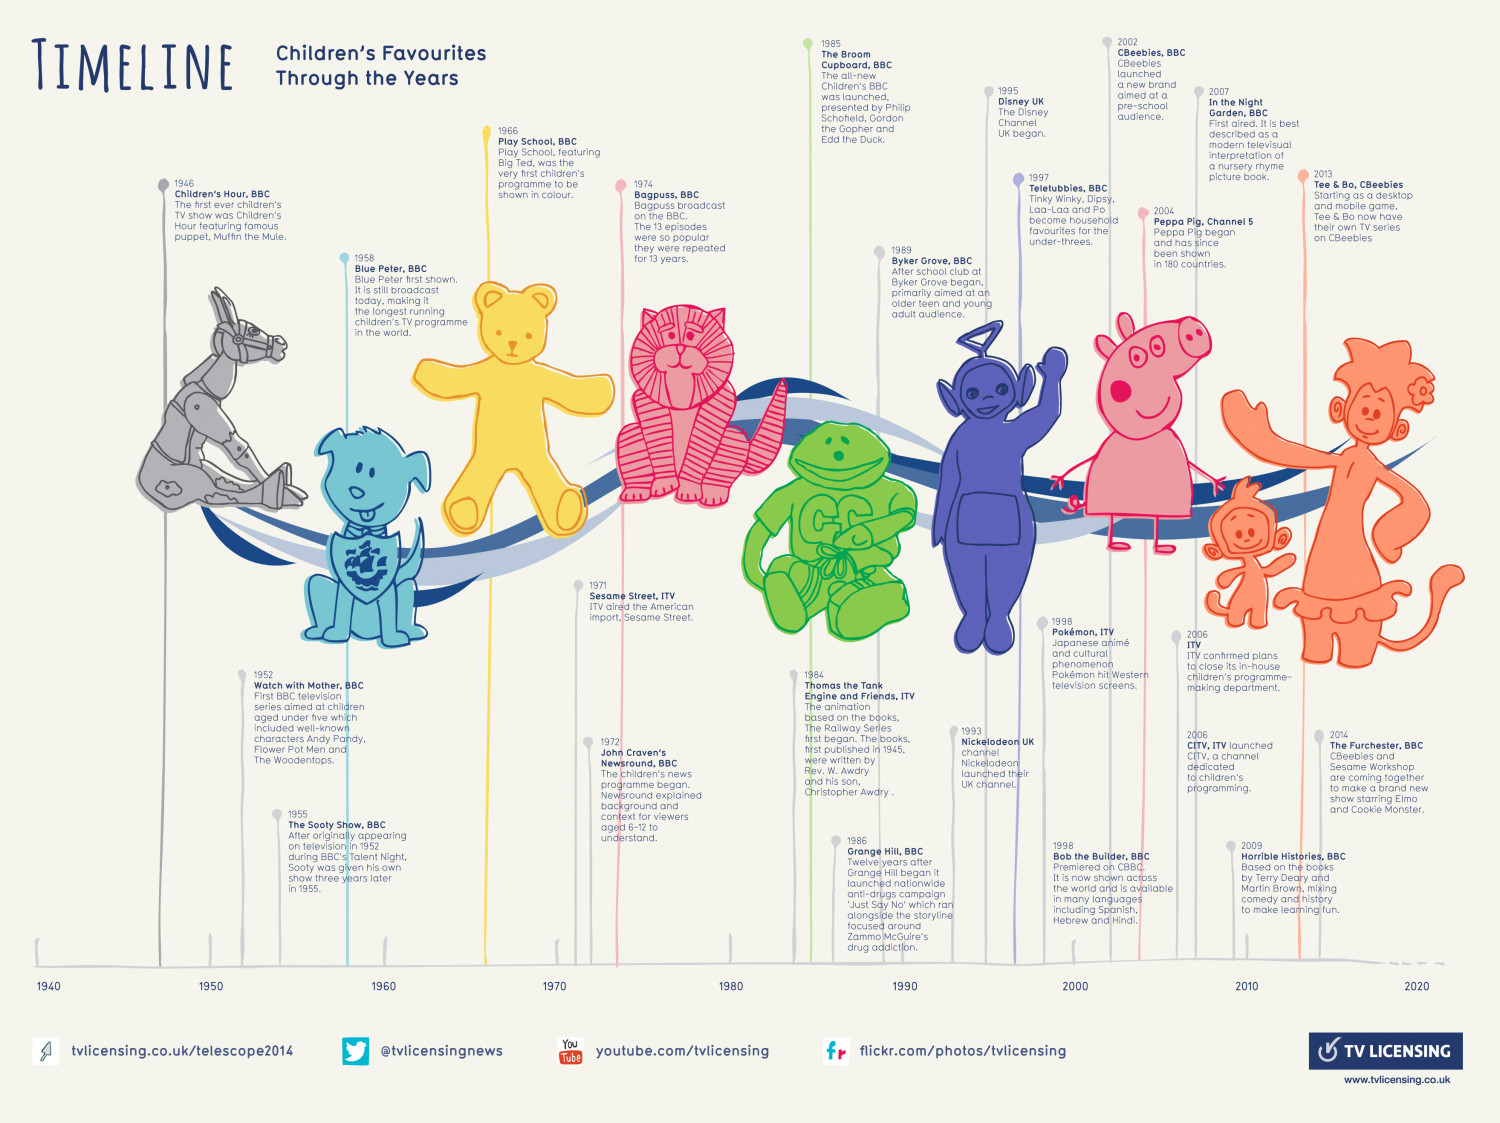 Children's Television Timeline Infographic